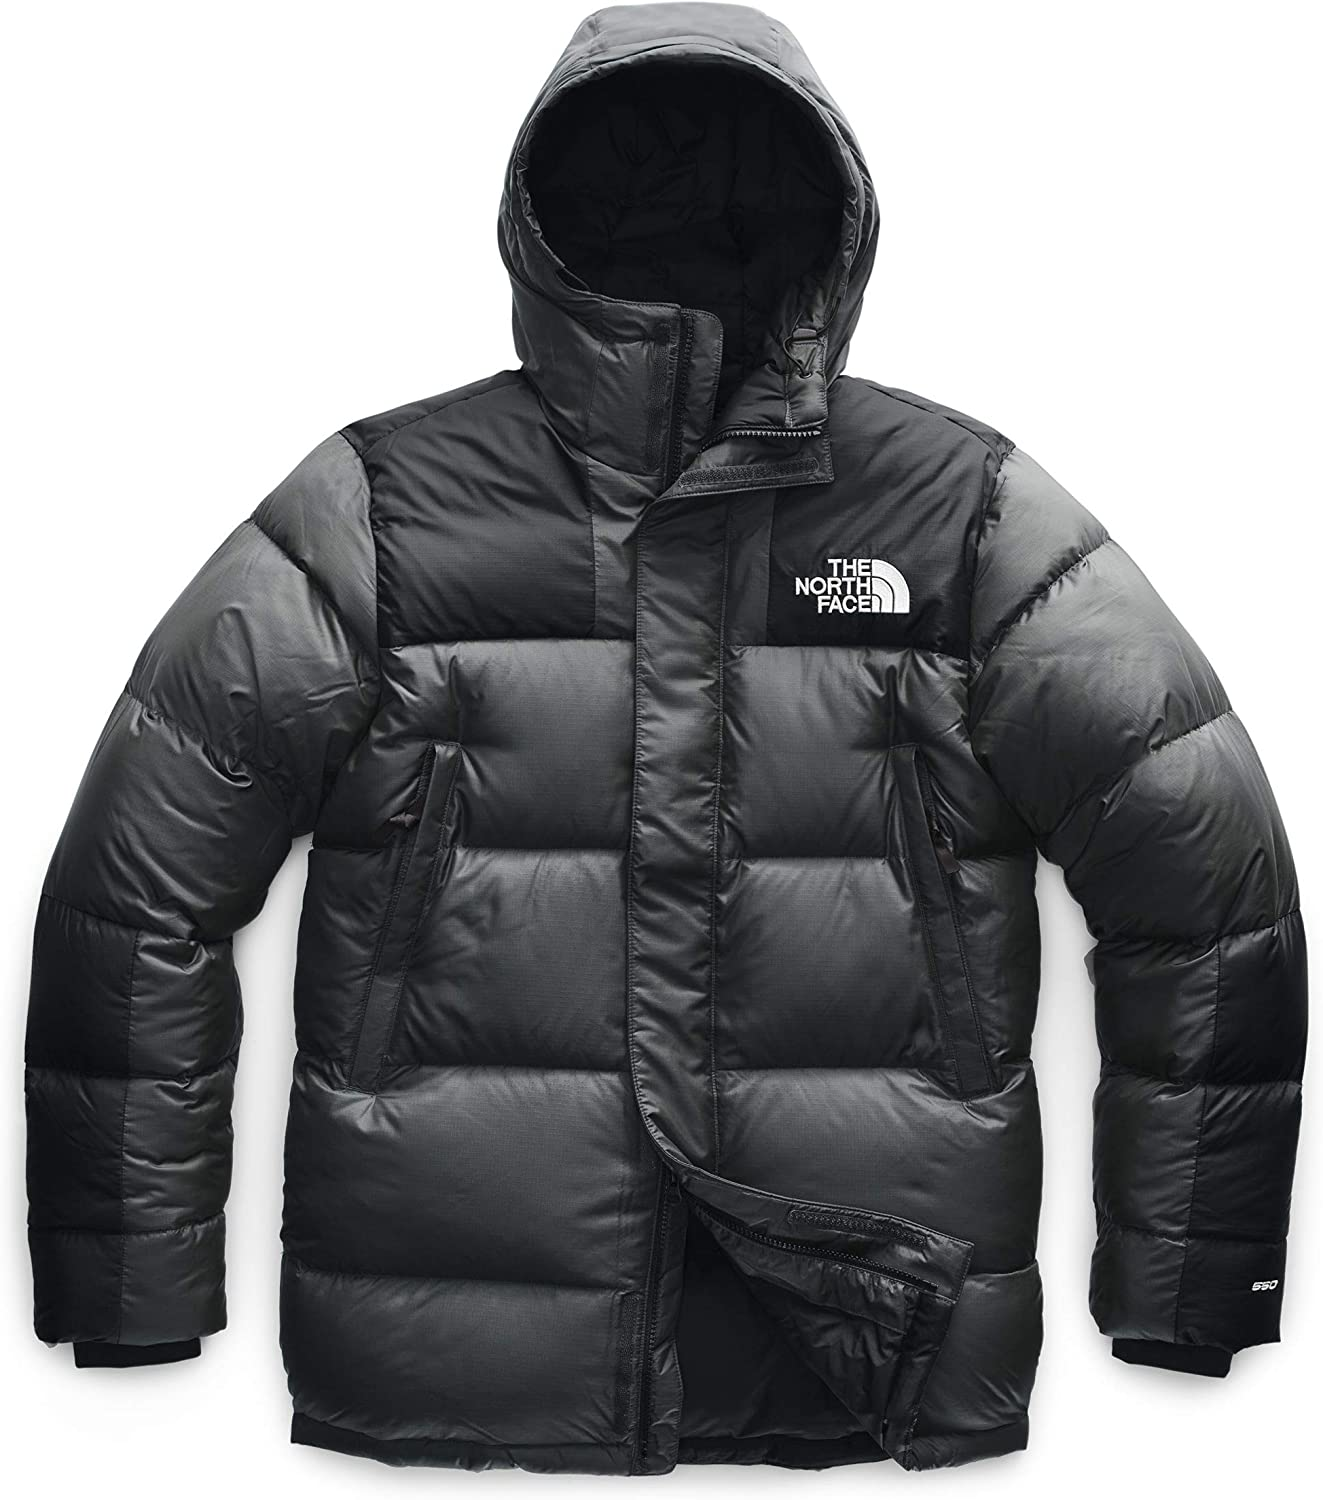 The North Face Men S Deptford Down Jacket Amazon Co Uk Clothing